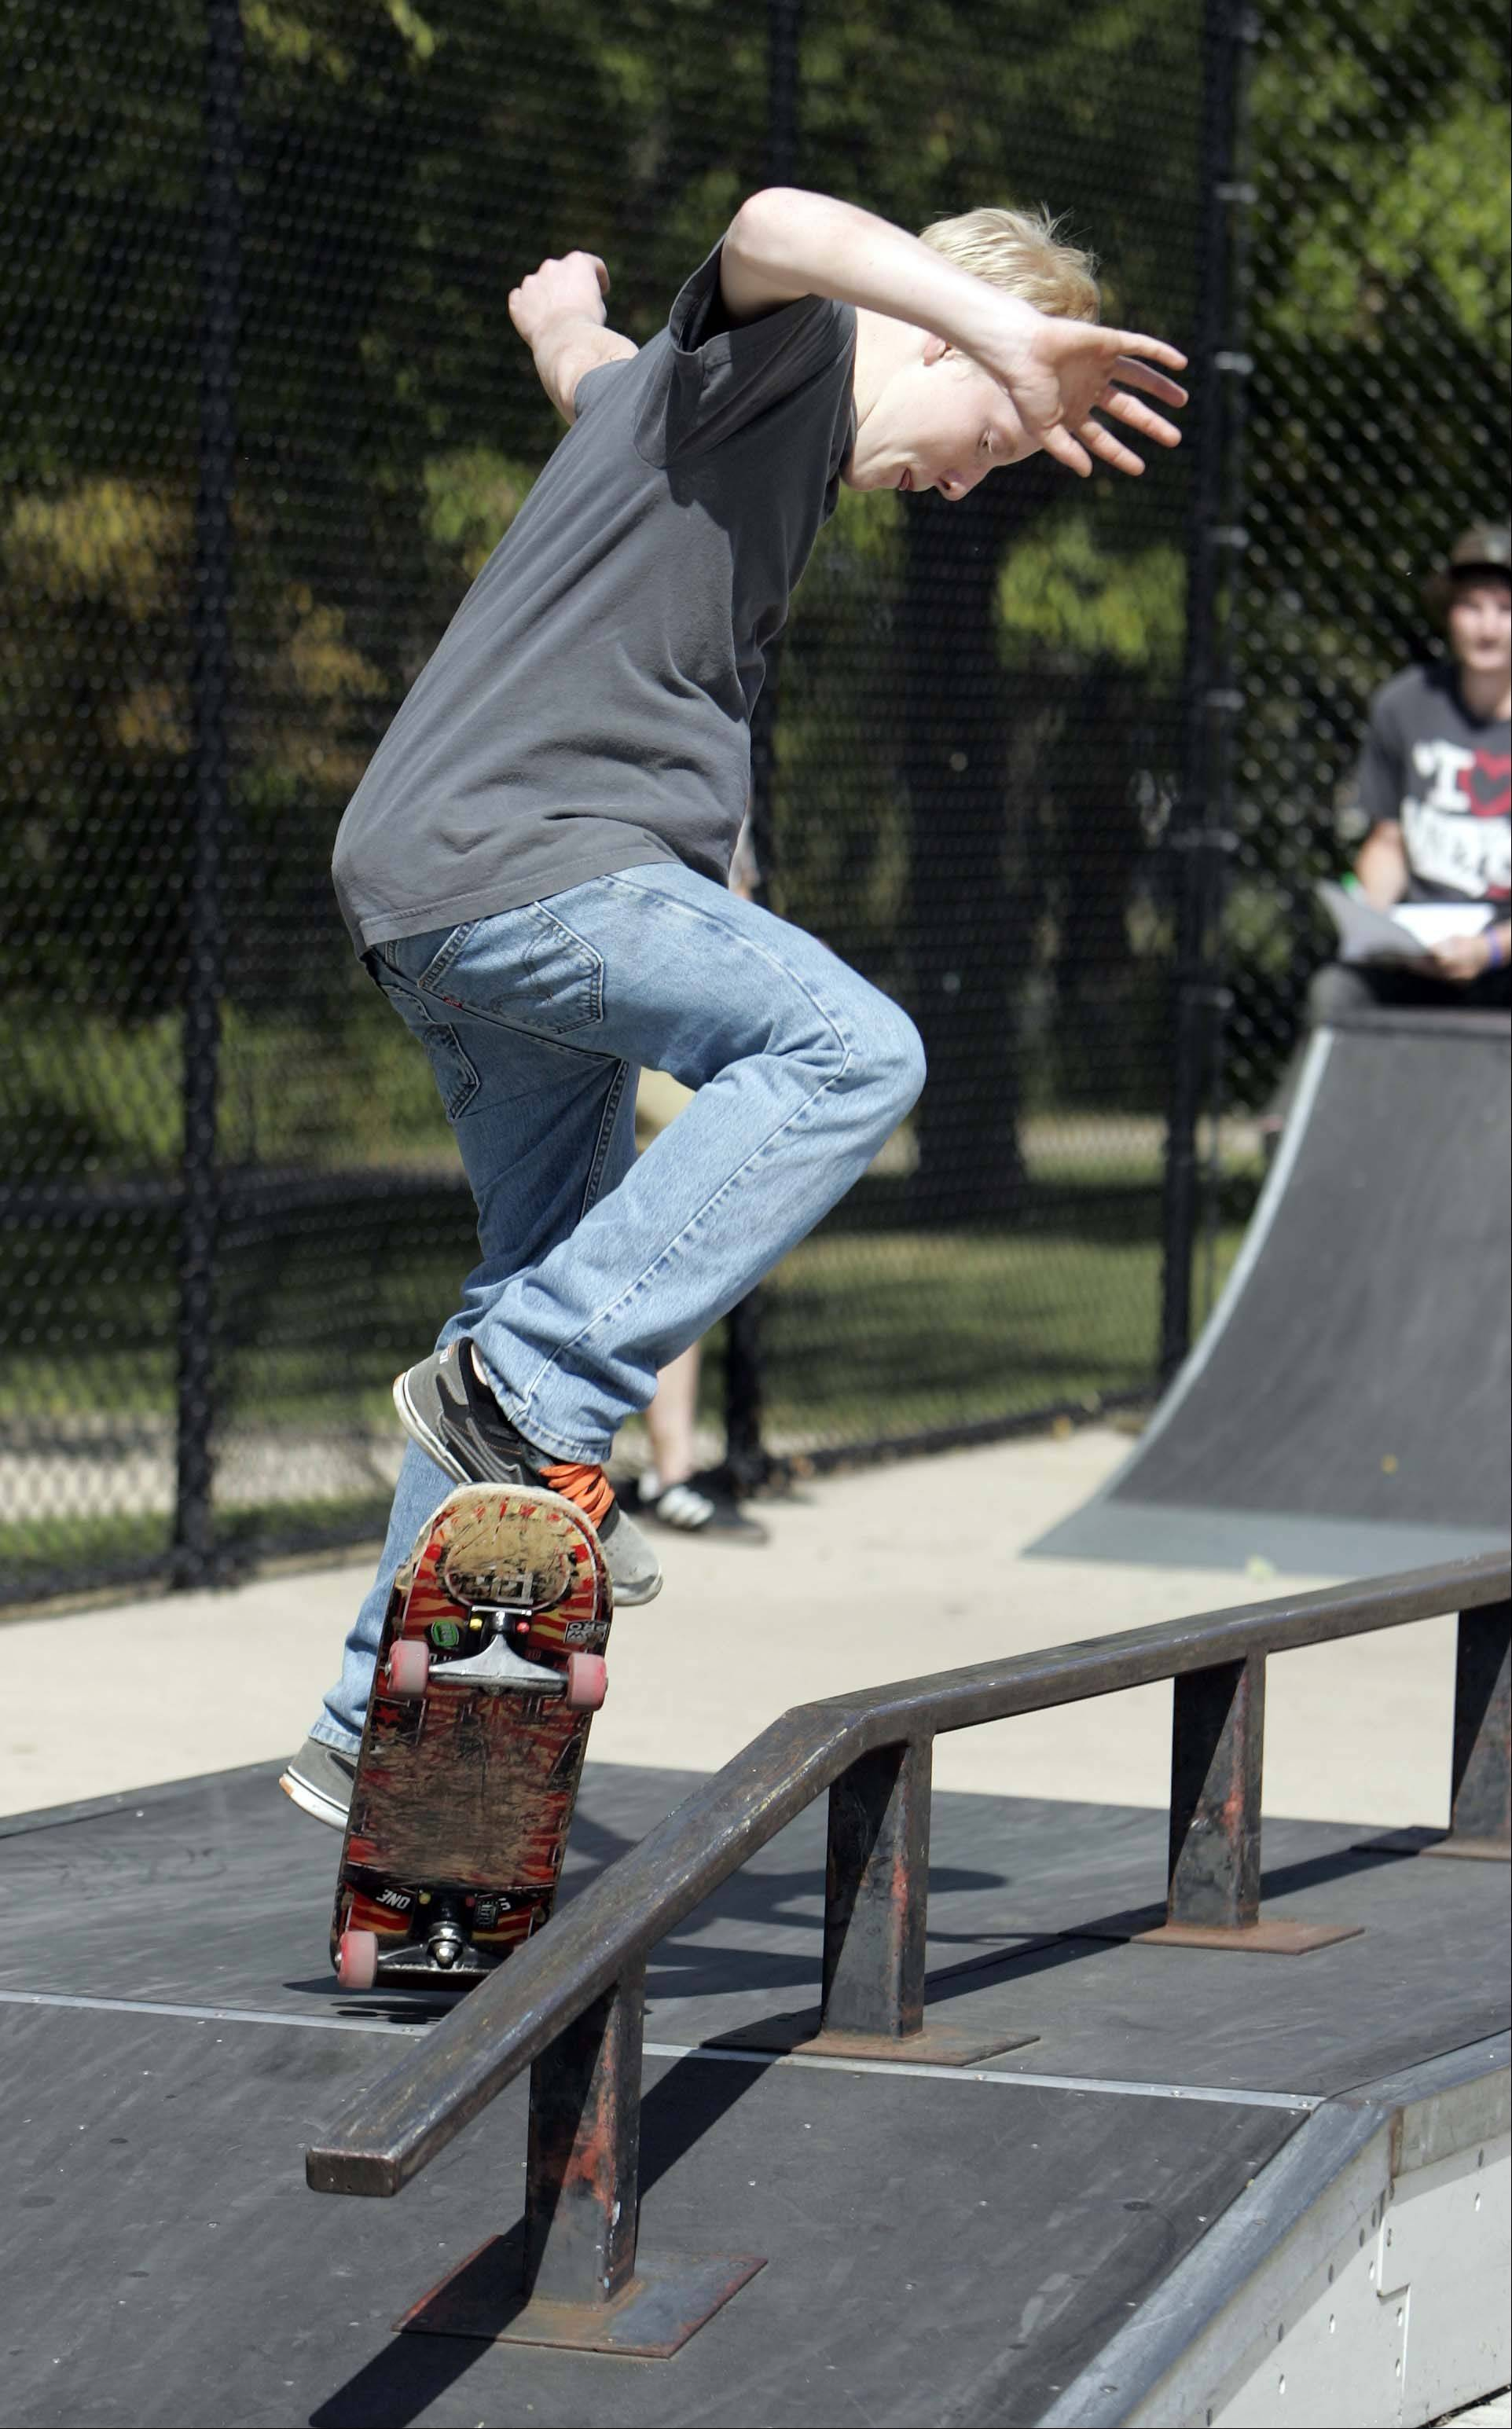 Fifteen-year-old Josh Brehm of Kaneville ollies to a grind during the Batavia Teen Center's third-annual skateboard competition Saturday at Blackard Skate-n-Bike Park in Batavia.